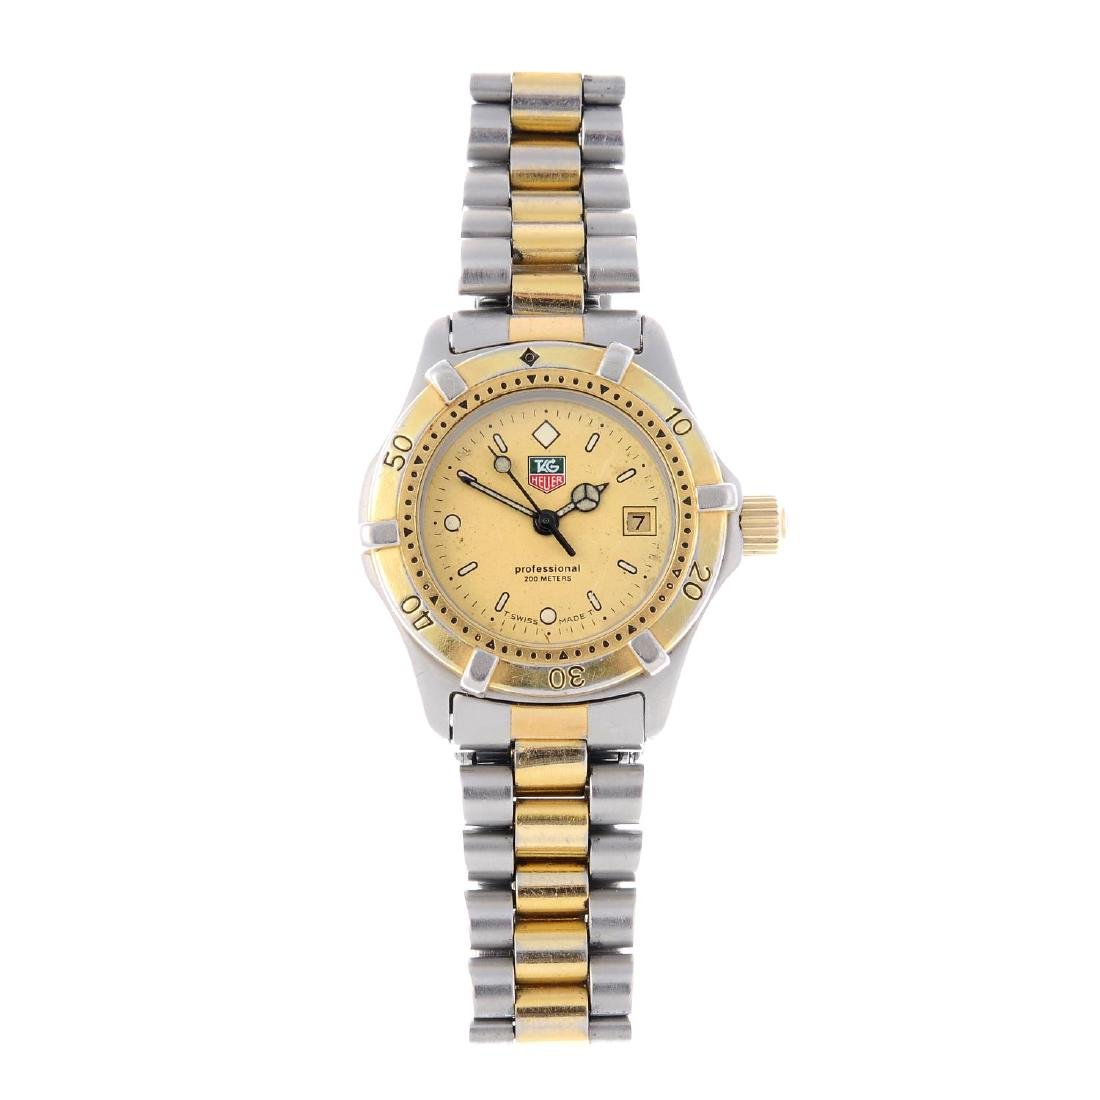 TAG HEUER - a lady's 2000 Series Professional bracelet